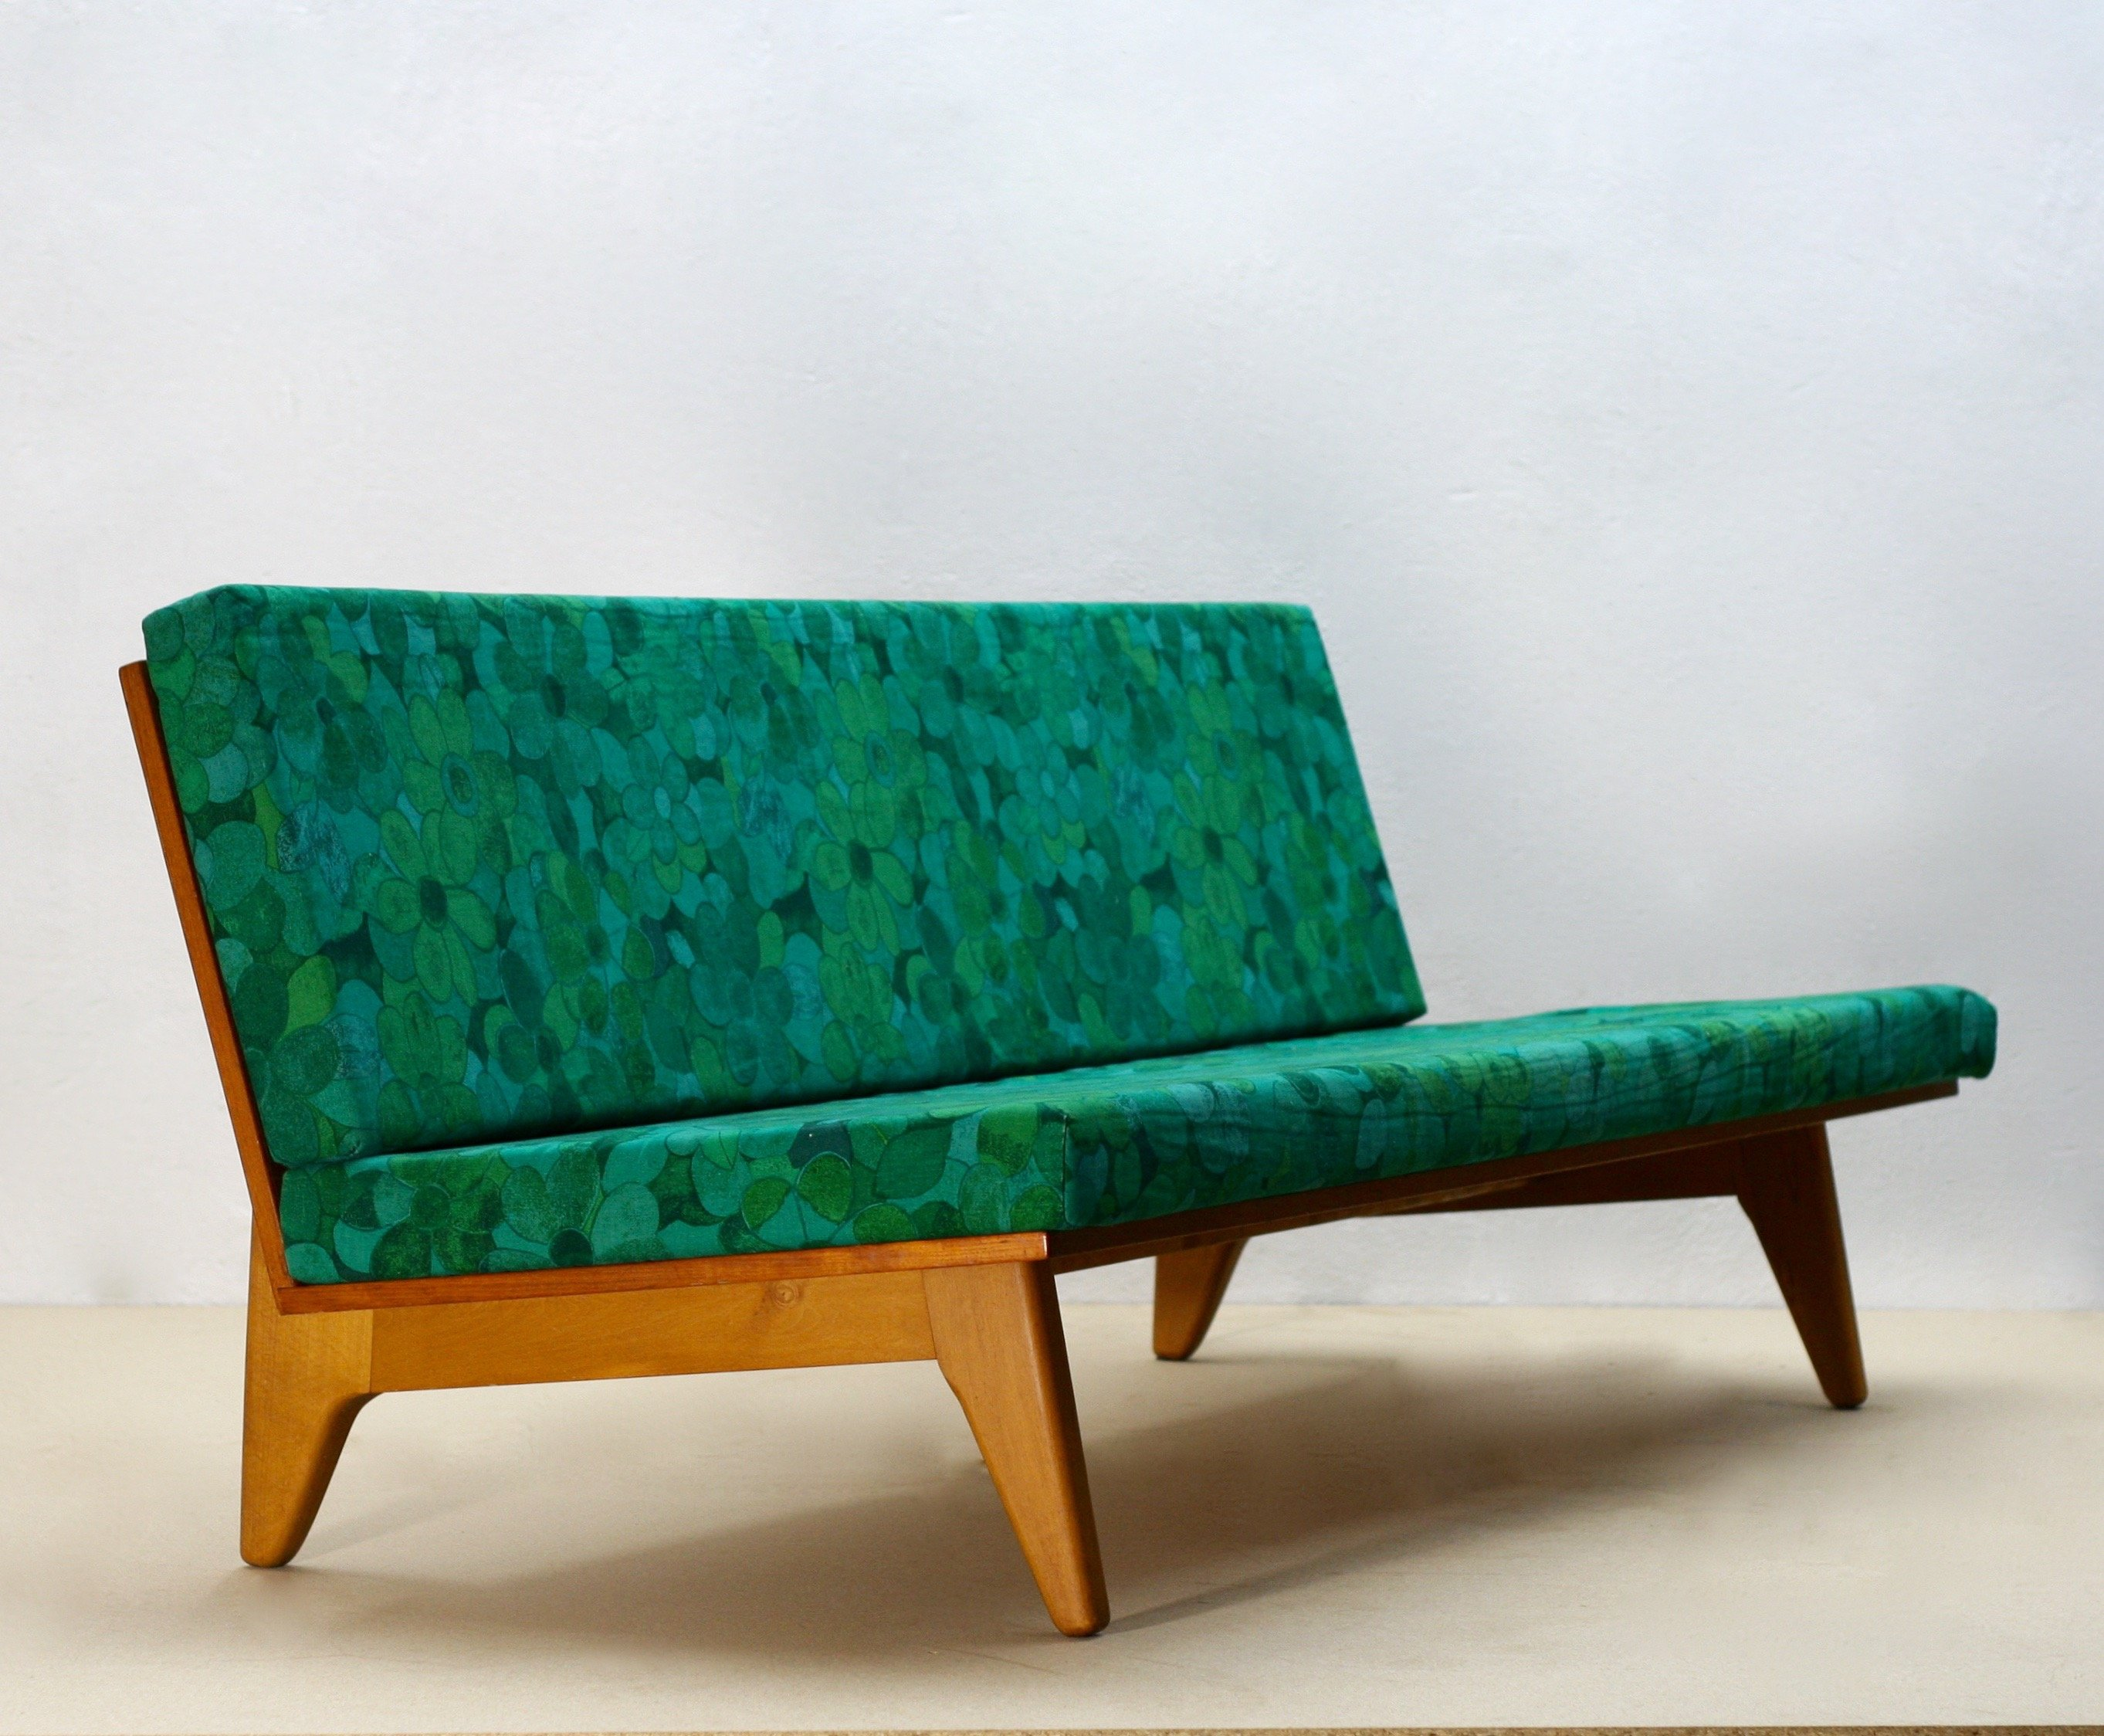 Swedish Mid Century Furniture Mid Century Swedish Teak Sofa Or Daybed By Gustaf Hiort Af Ornäs